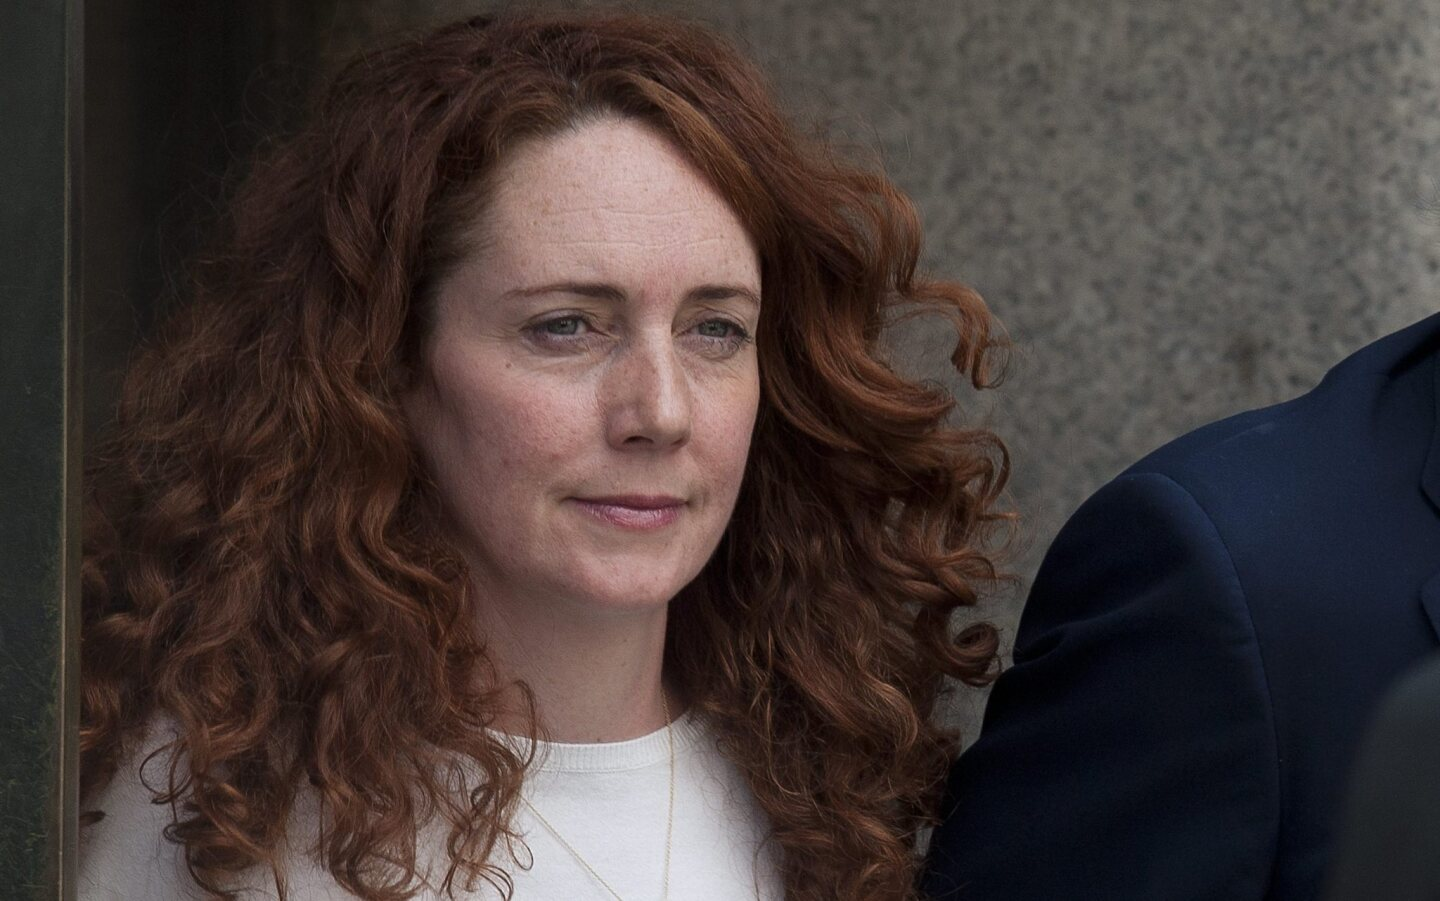 Rebekah Brooks leaves London's Old Bailey courthouse after verdicts were delivered Tuesday in a landmark phone-hacking trial.